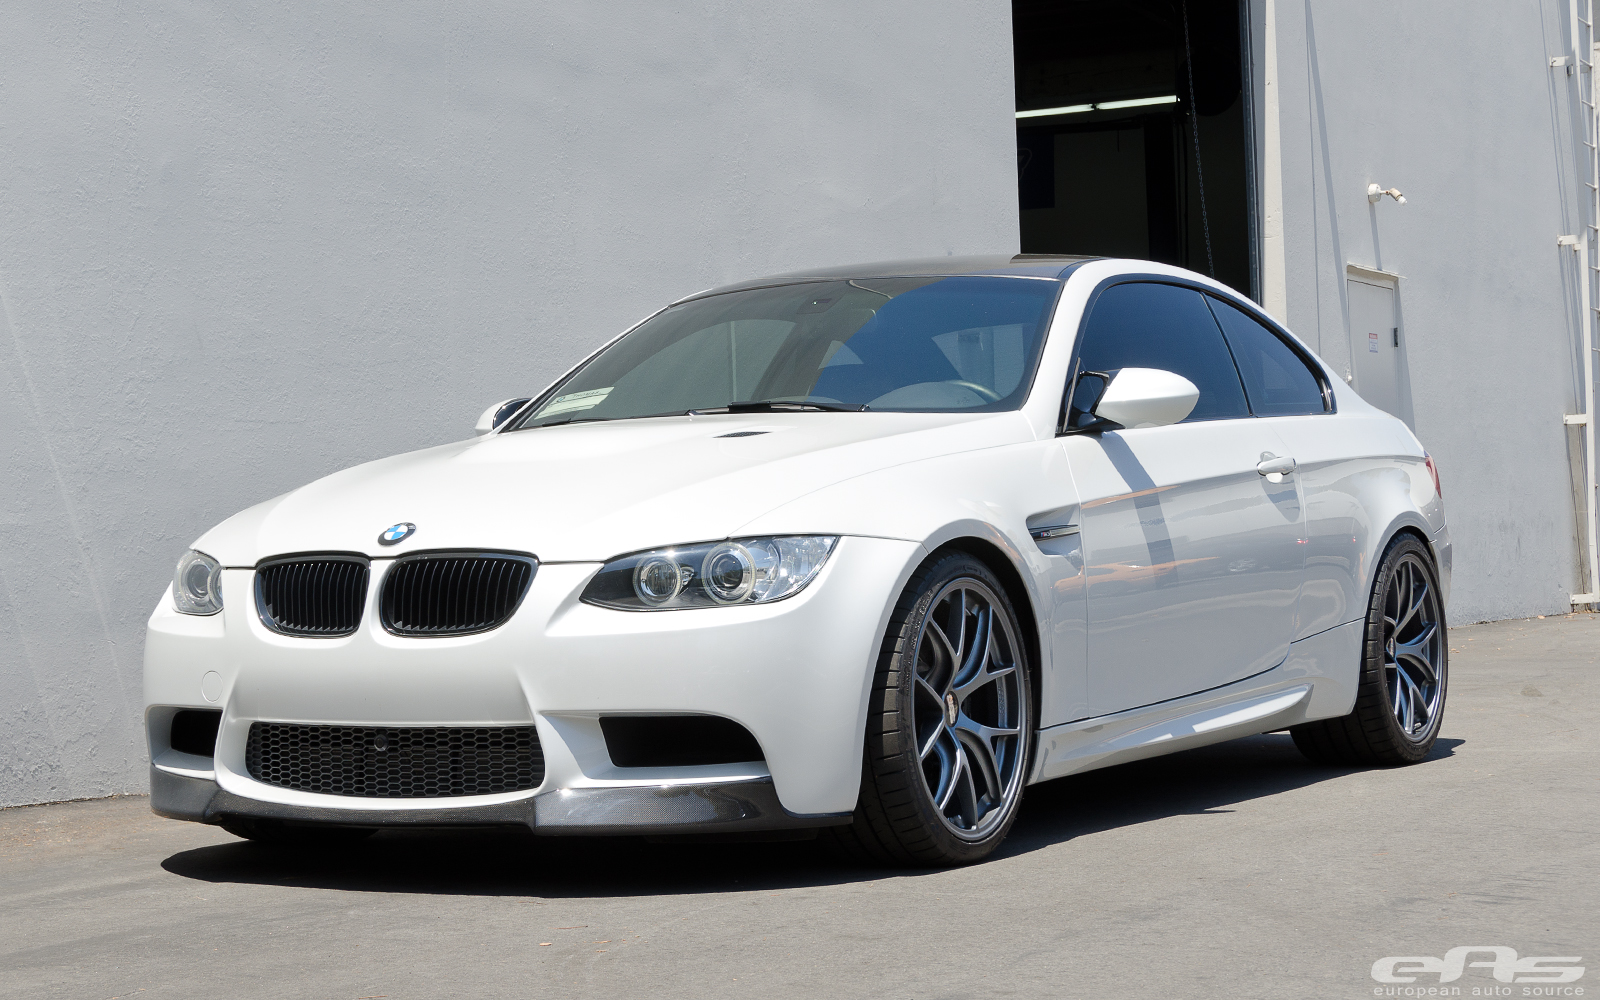 bmw e92 m3 on bbs wheels gets gt4 exhaust at eas. Black Bedroom Furniture Sets. Home Design Ideas